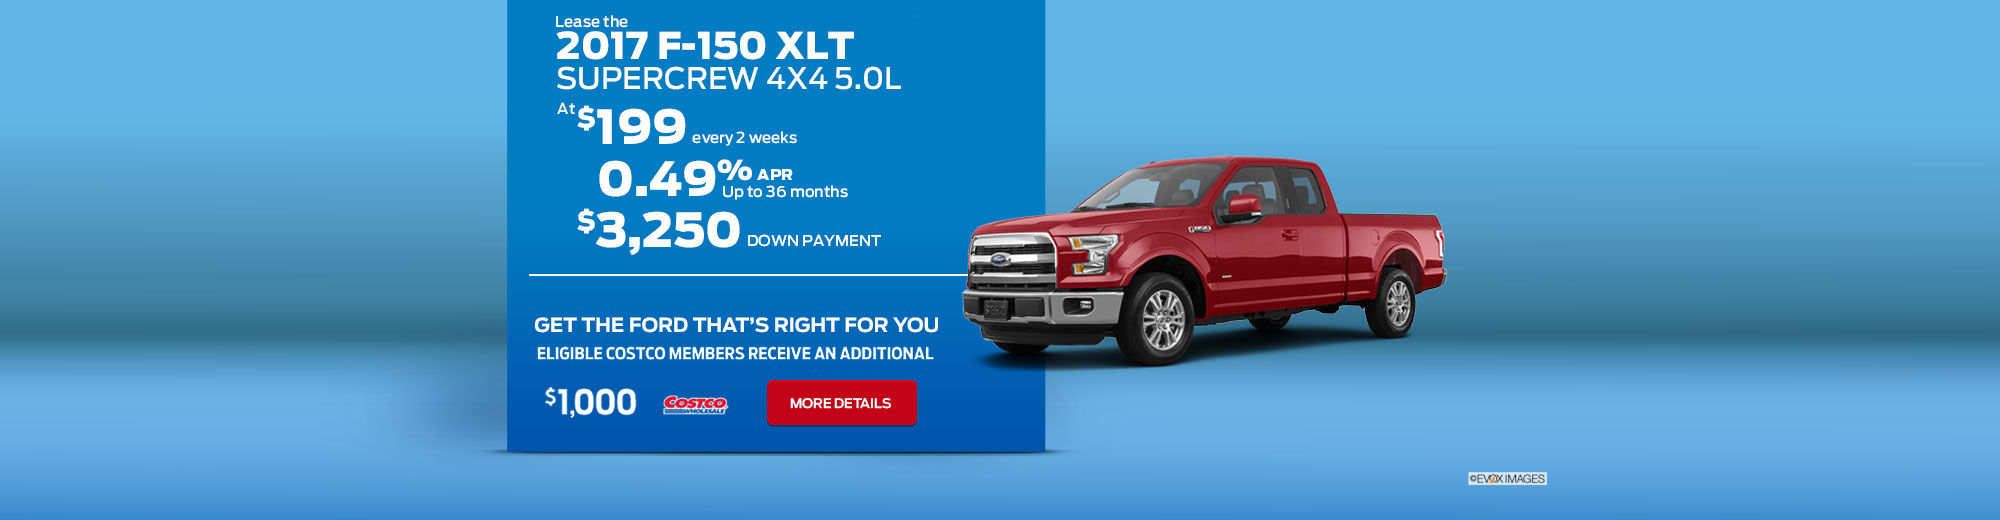 Get The Ford That's Right For You F-150